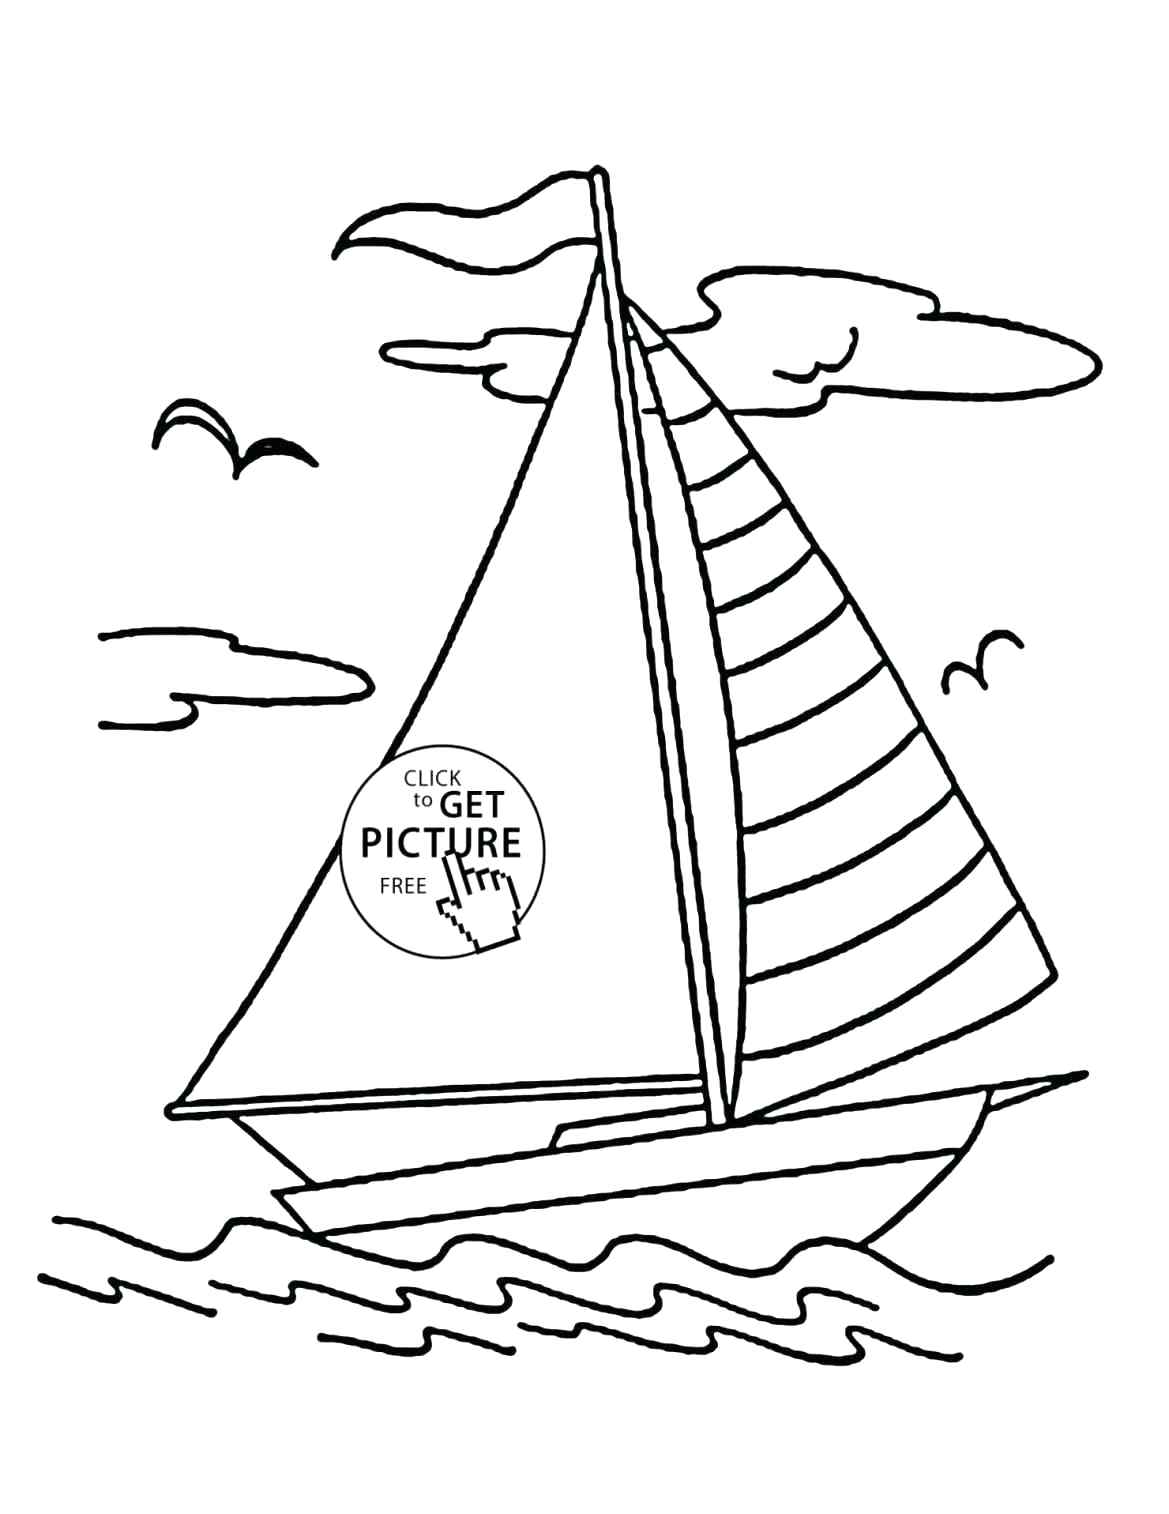 1169x1514 Coloring Fishing Boat Coloring Pages Awesome Print Water Skiing